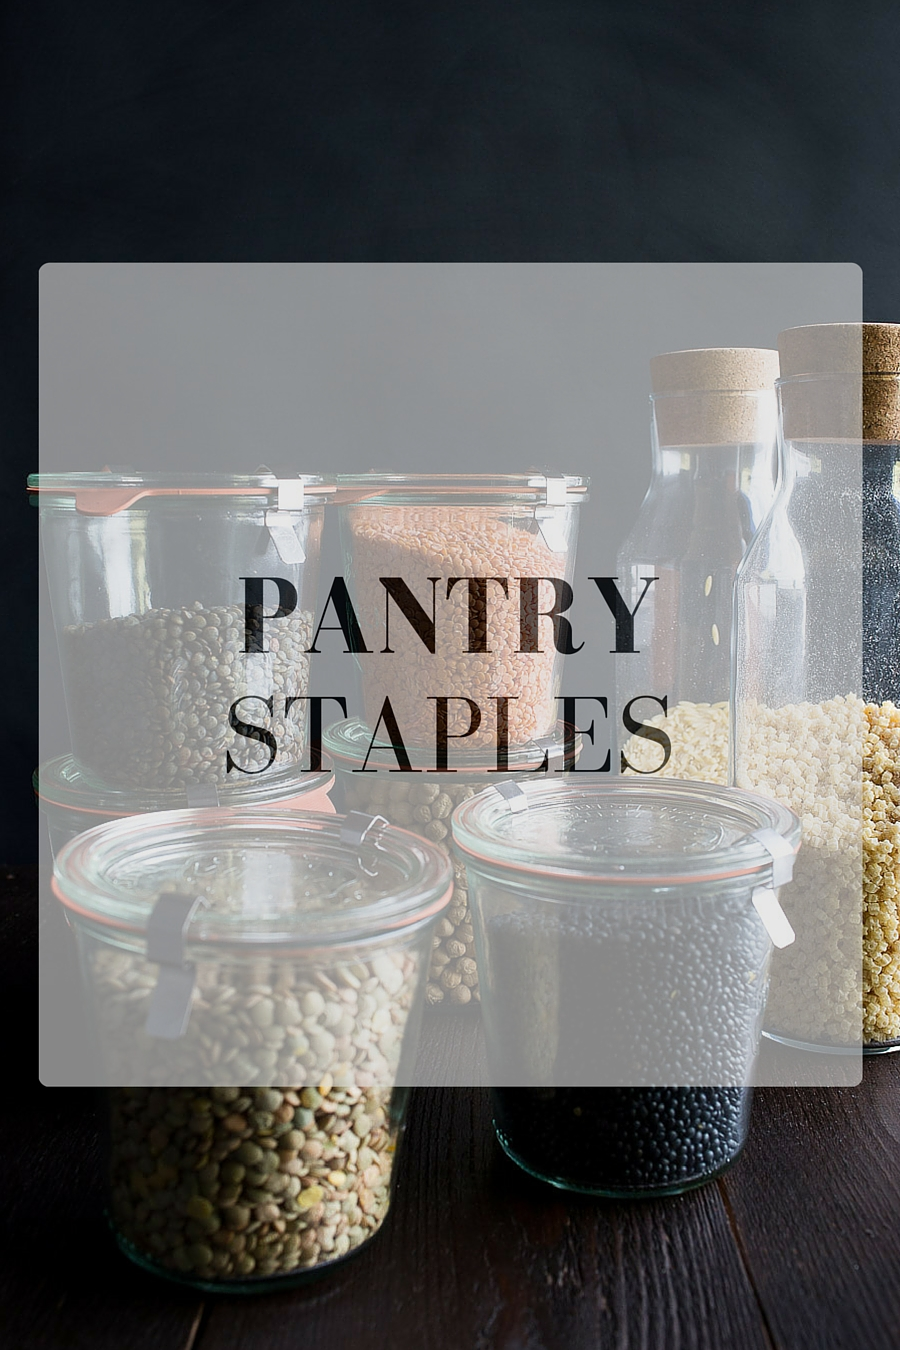 Pantry Staples  Chez Us. Design Of Rectangular Living Room. Less Formal Living Room. Living Space Room Dividers. Living Room Modern Fireplace. Decorating A Living Room With White Furniture. Living Room Furniture Green Bay Wi. Decorating Ideas In Living Room. Painting Living Room High Ceilings